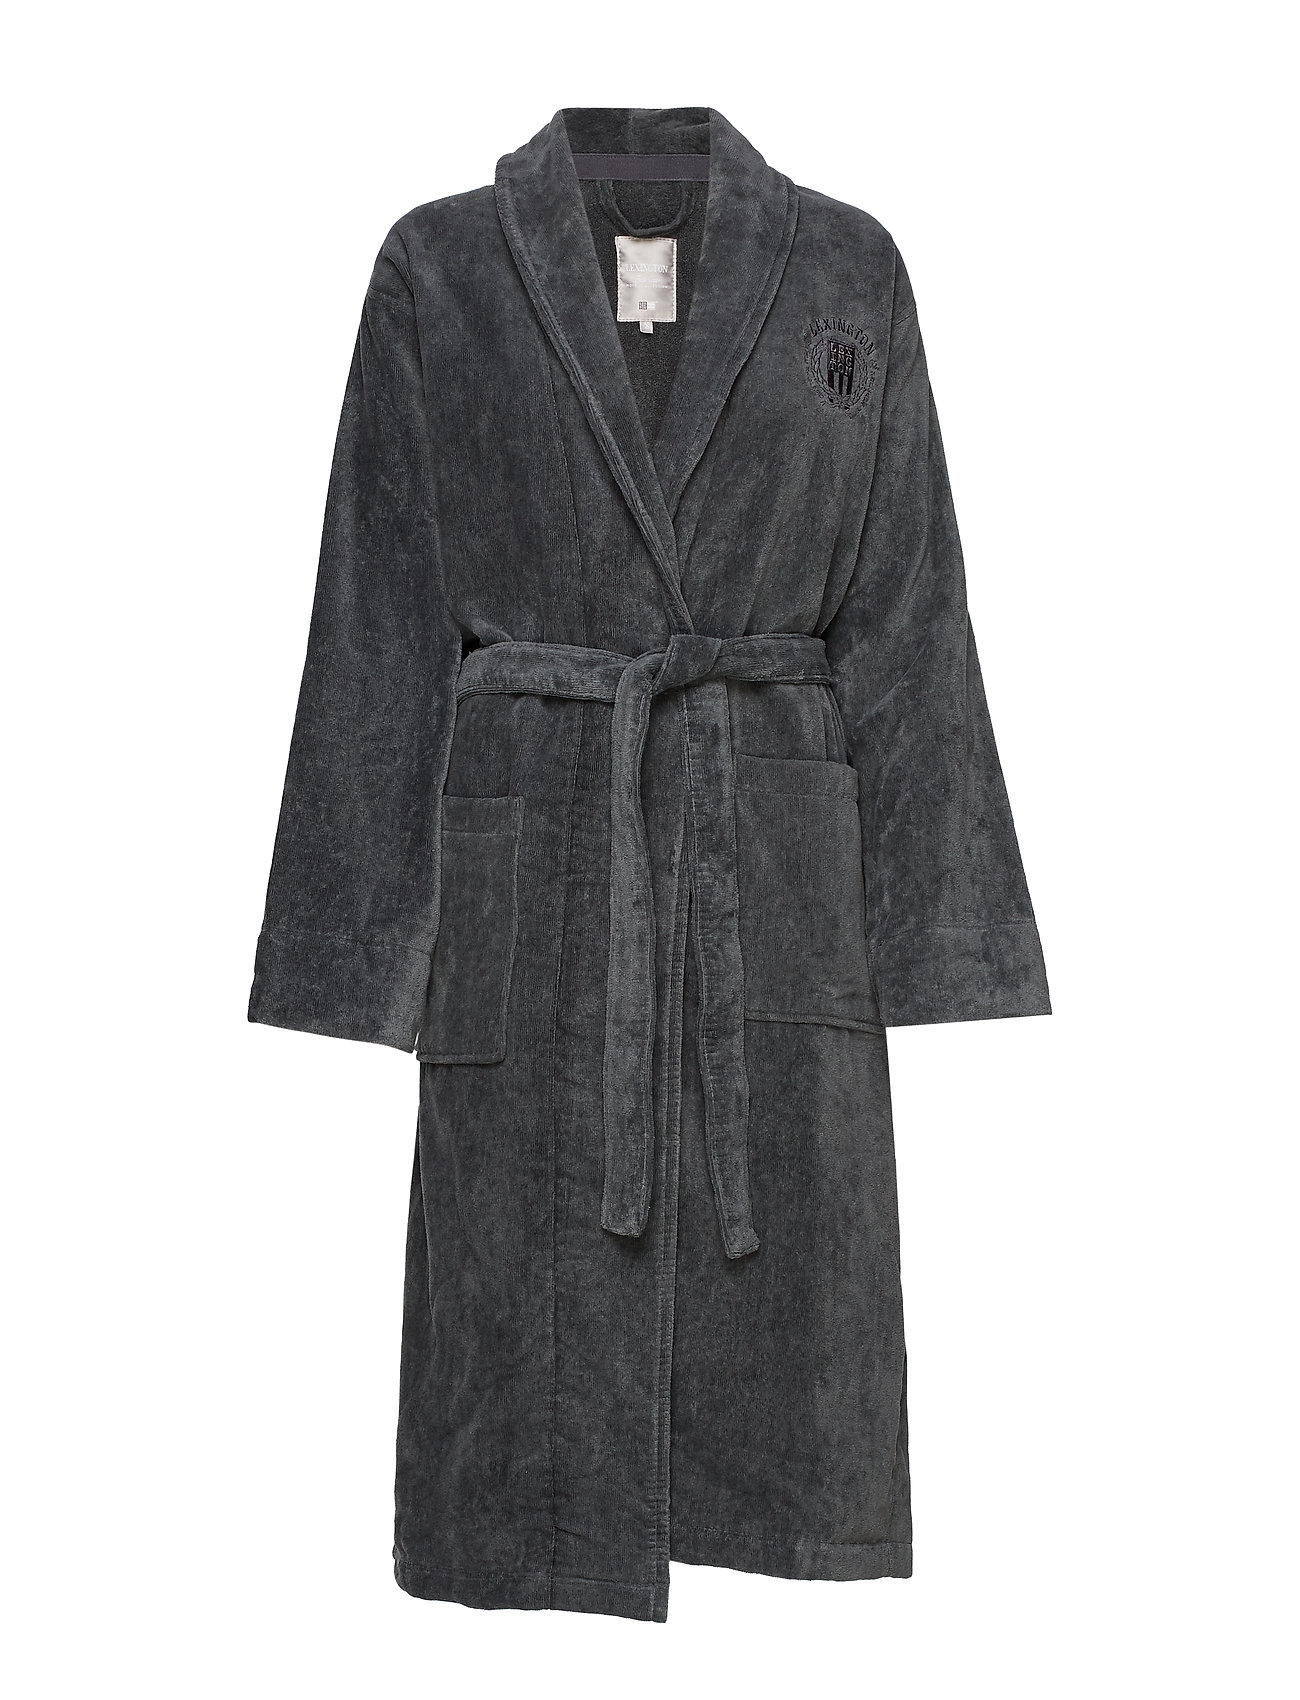 Lexington Home Hotel Velour Robe - GRAY